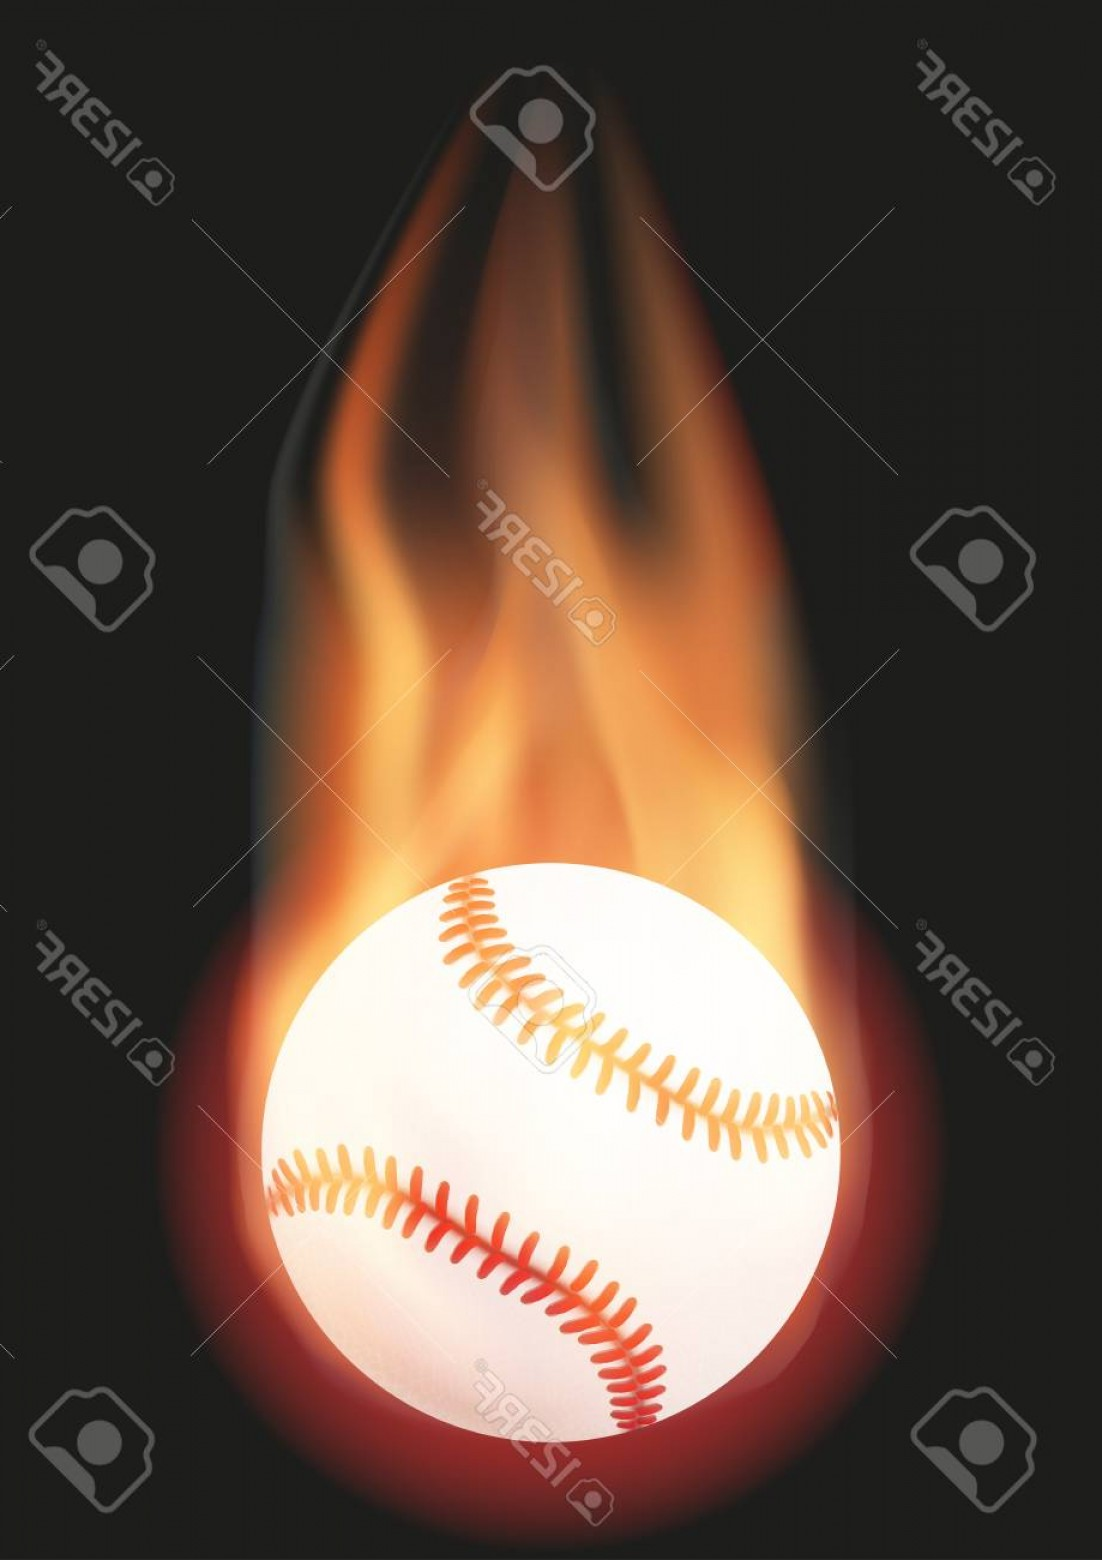 Baseball Tails Vector Clip Arts: Photostock Vector Burning Baseball Ball With A Tail Of Flame Illustration Isolated On Background